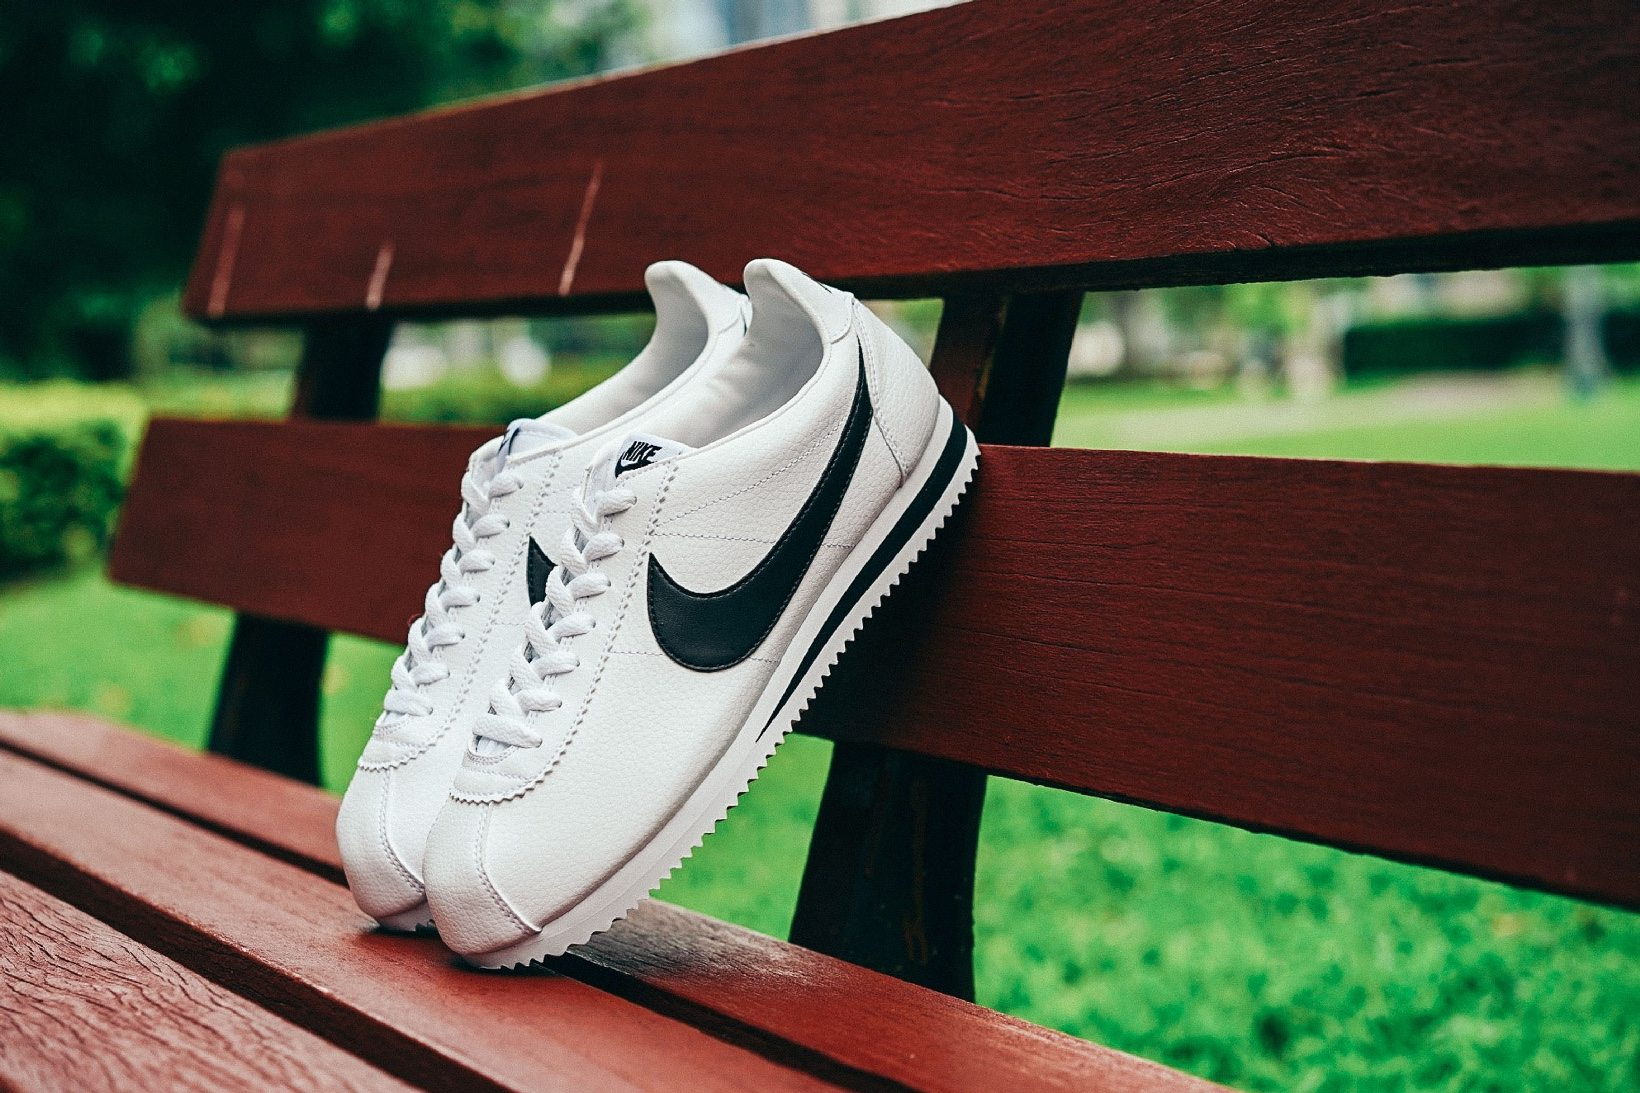 Nike Cortez Returns in Leather and Nylon for Spring Nice Kicks